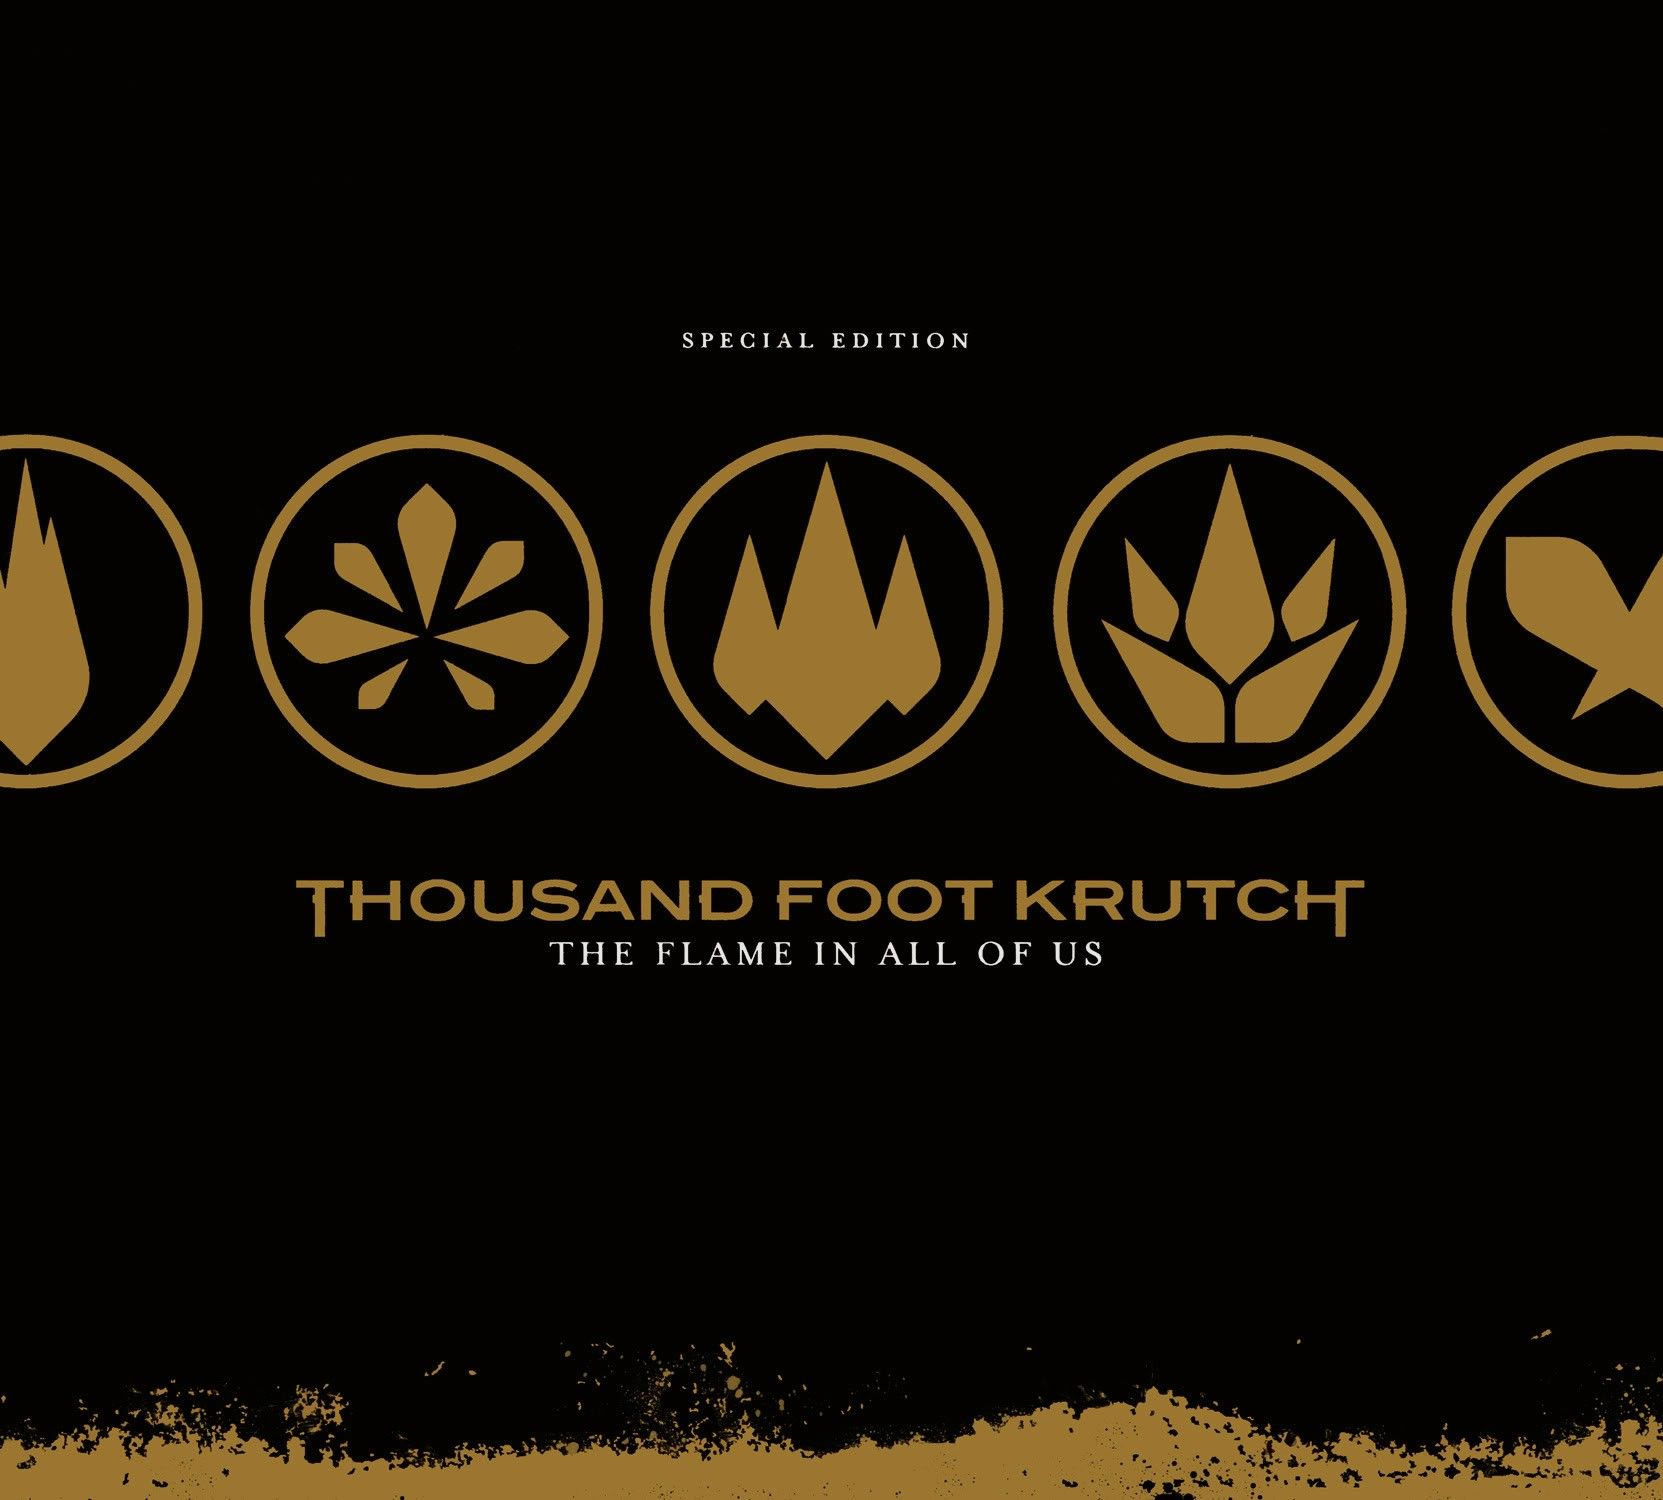 Thousand Foot Krutch Wallpaper Clean   1920x1080 by Quced on 1663x1500